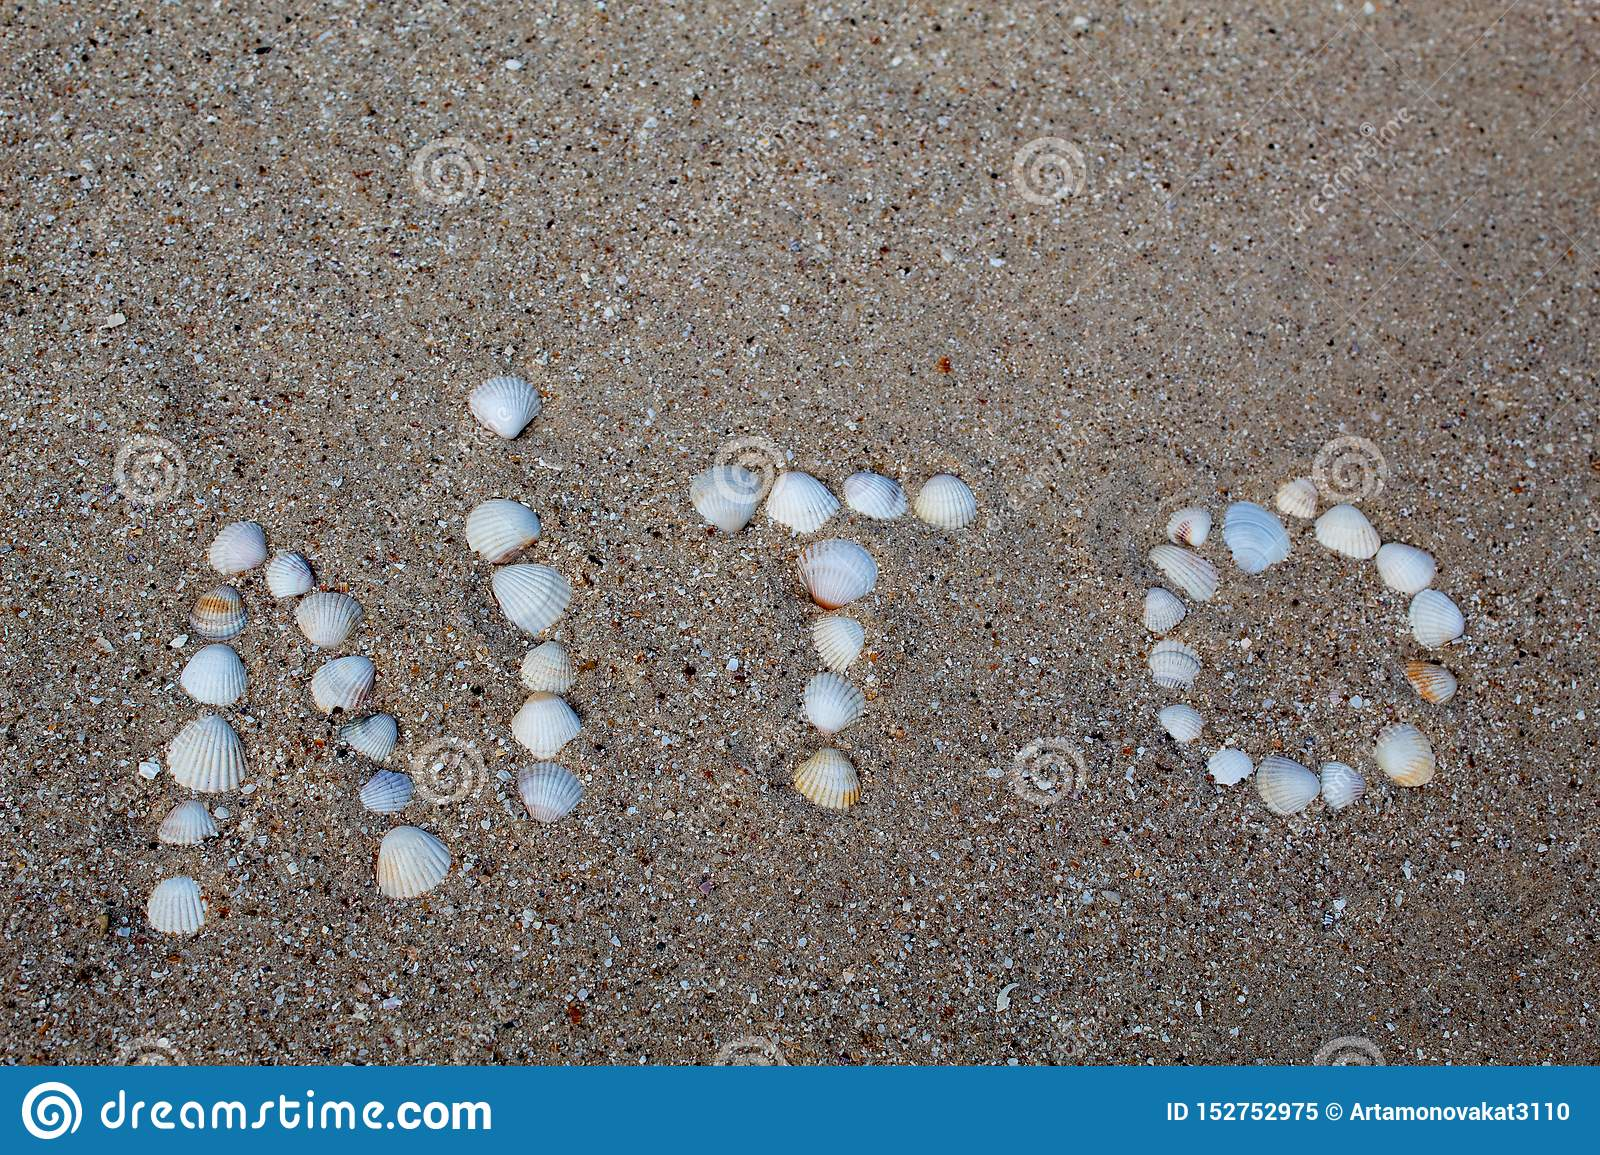 The word summer, laid out on the sand with shells, in the Ukrainian language.